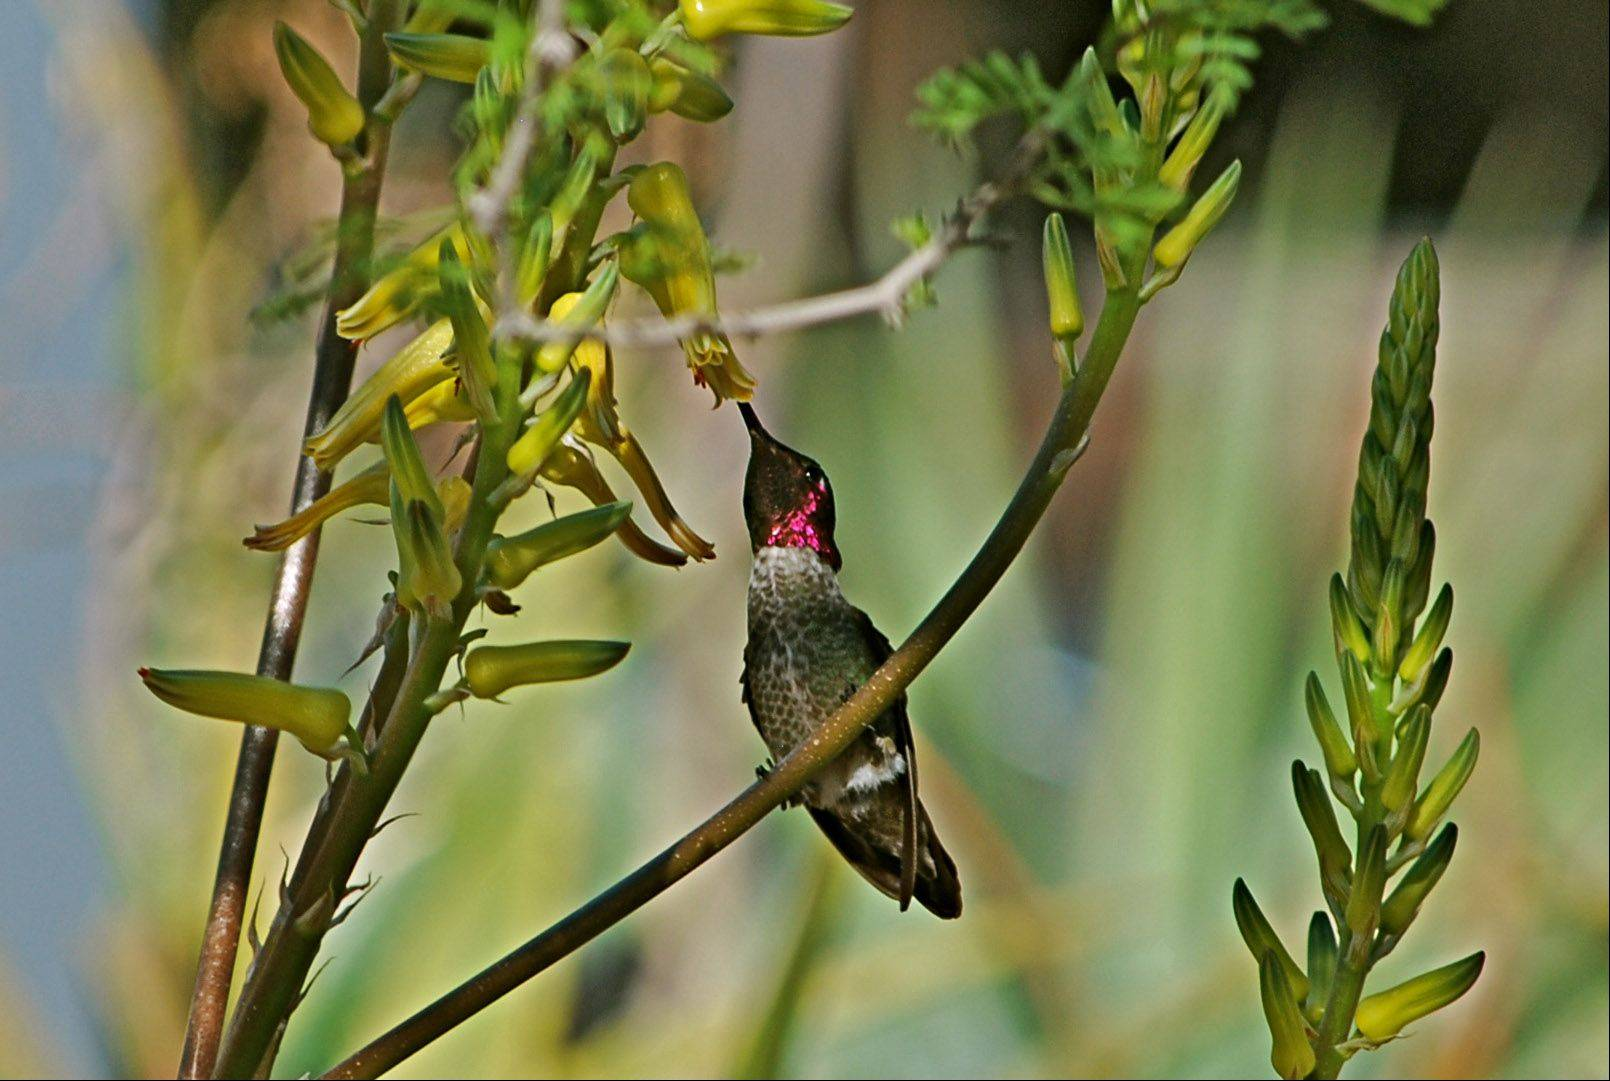 I captured this picture of a hummingbird while at the Phoenix Botanic Garden a couple of springs ago. We were there for baseball spring training, but there is much more to see out there in addition to the games.